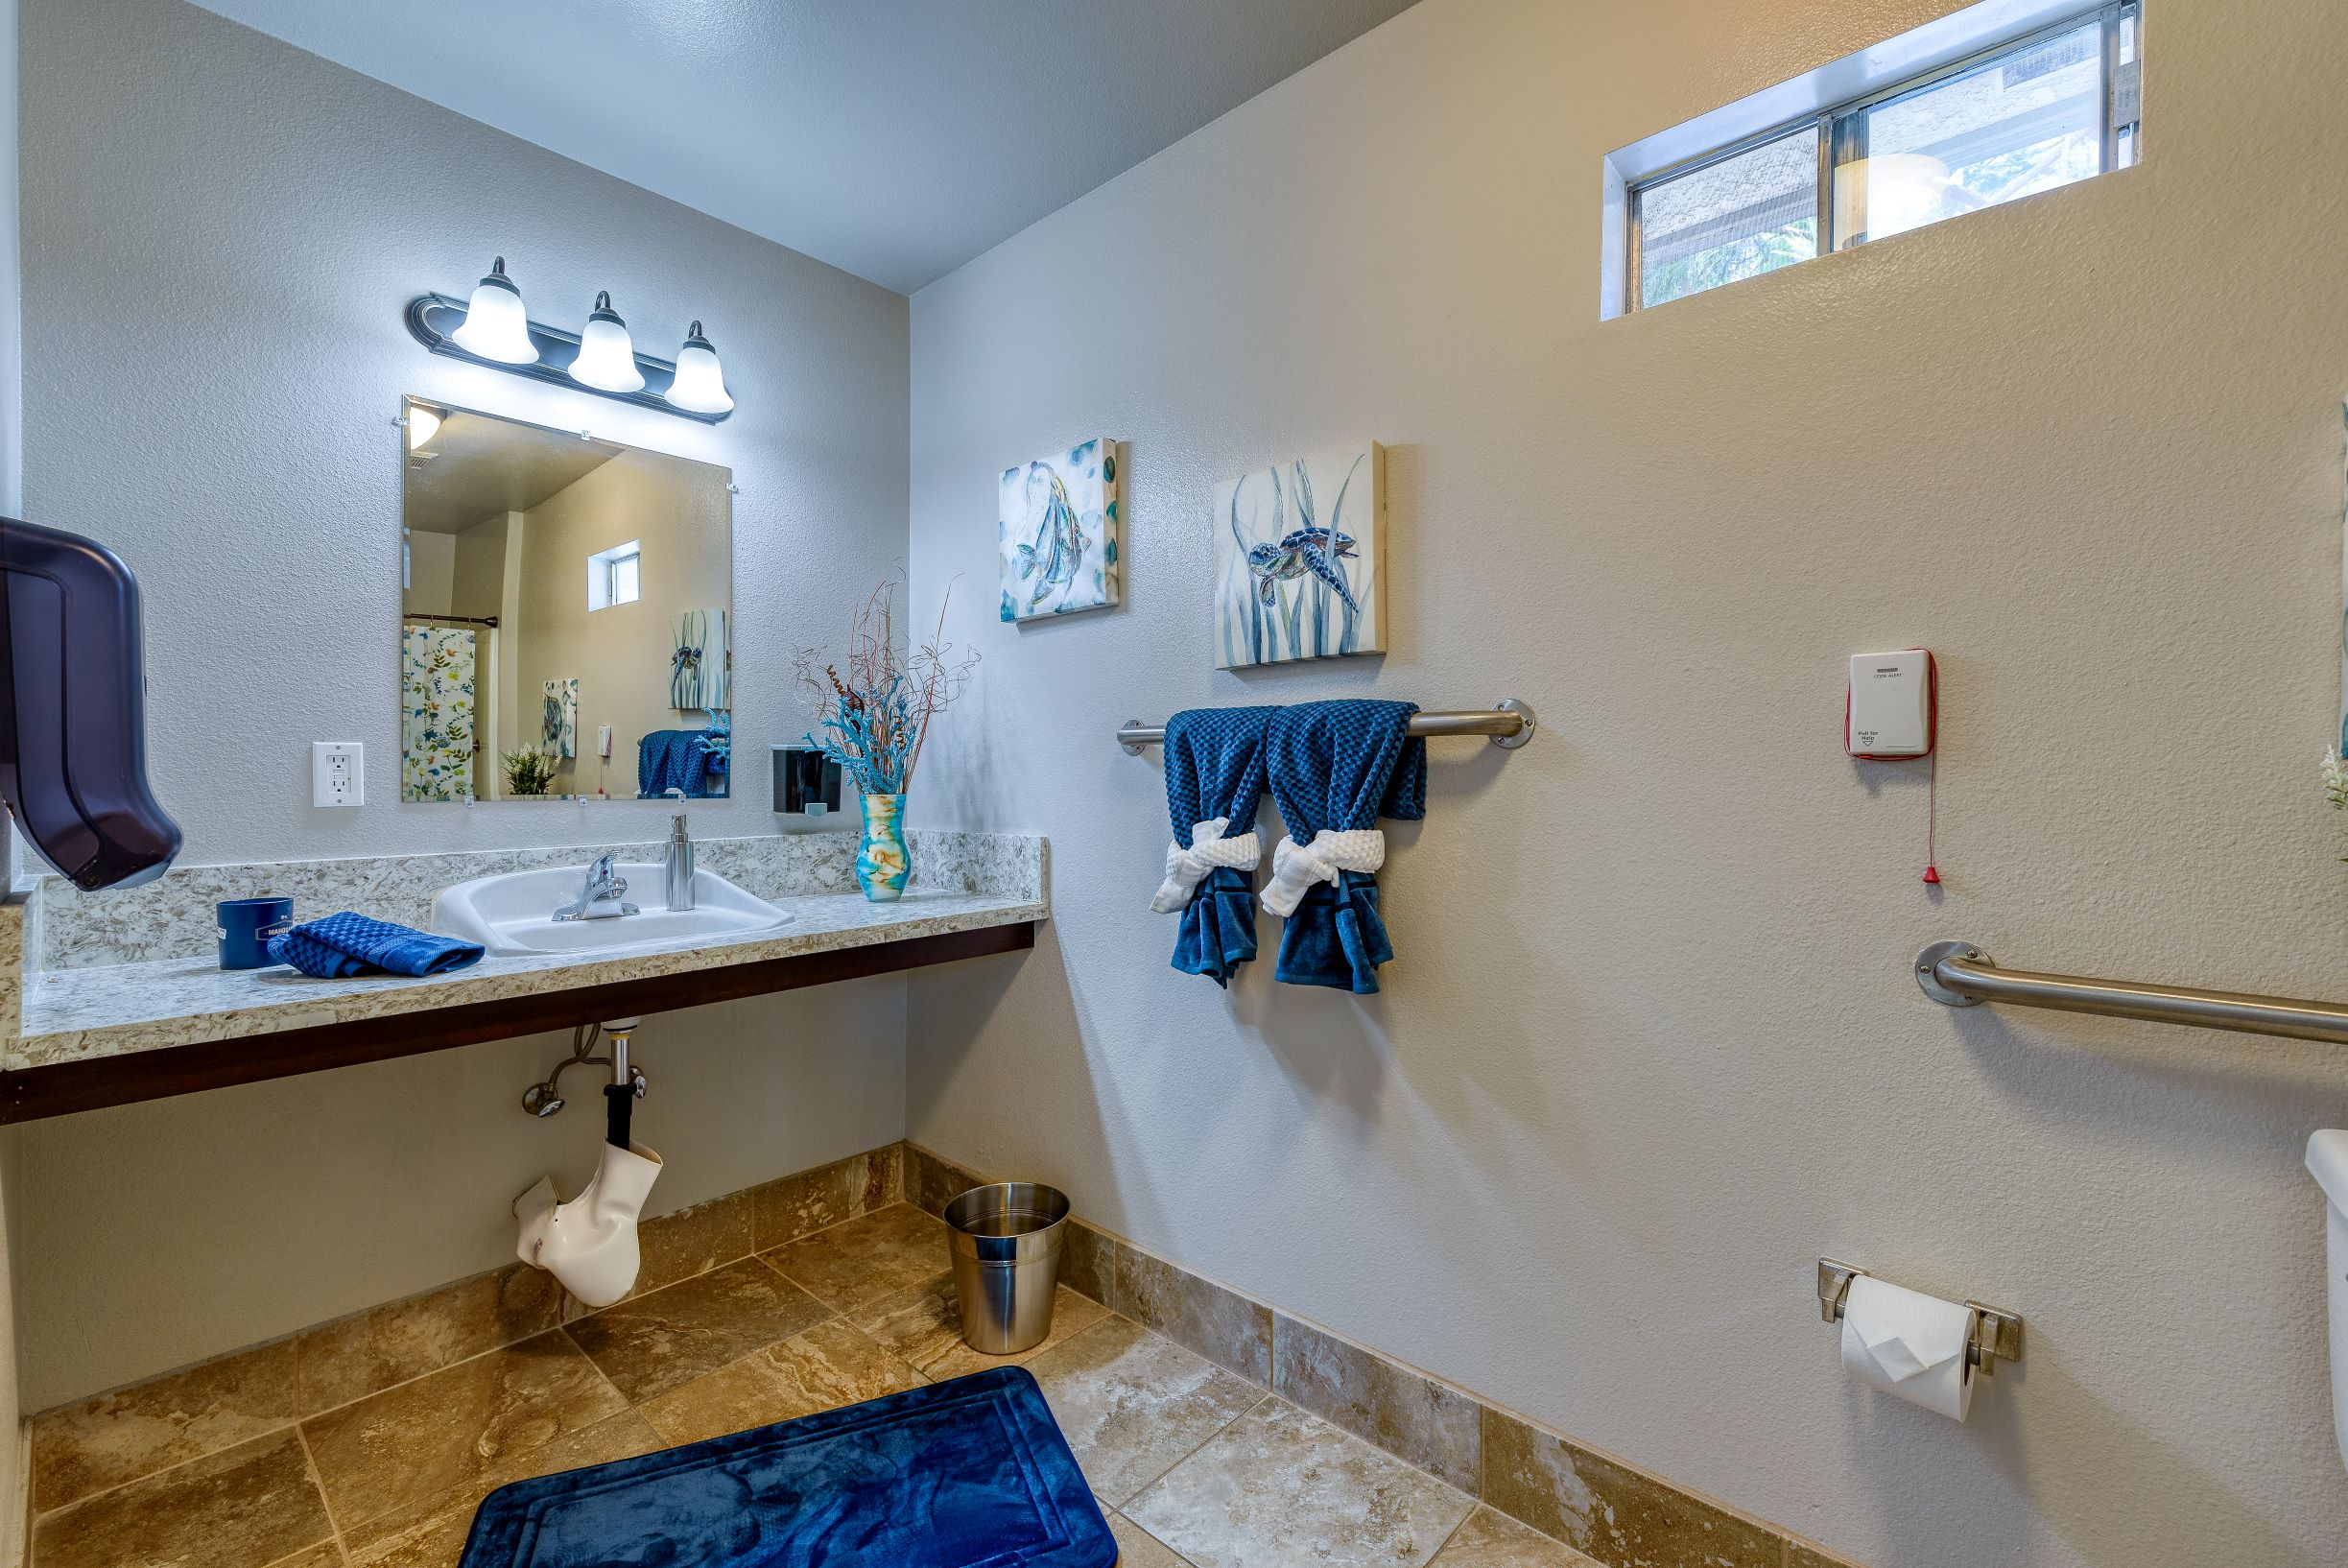 One of the fully equipped bathrooms at Pacifica Senior Living South Coast.